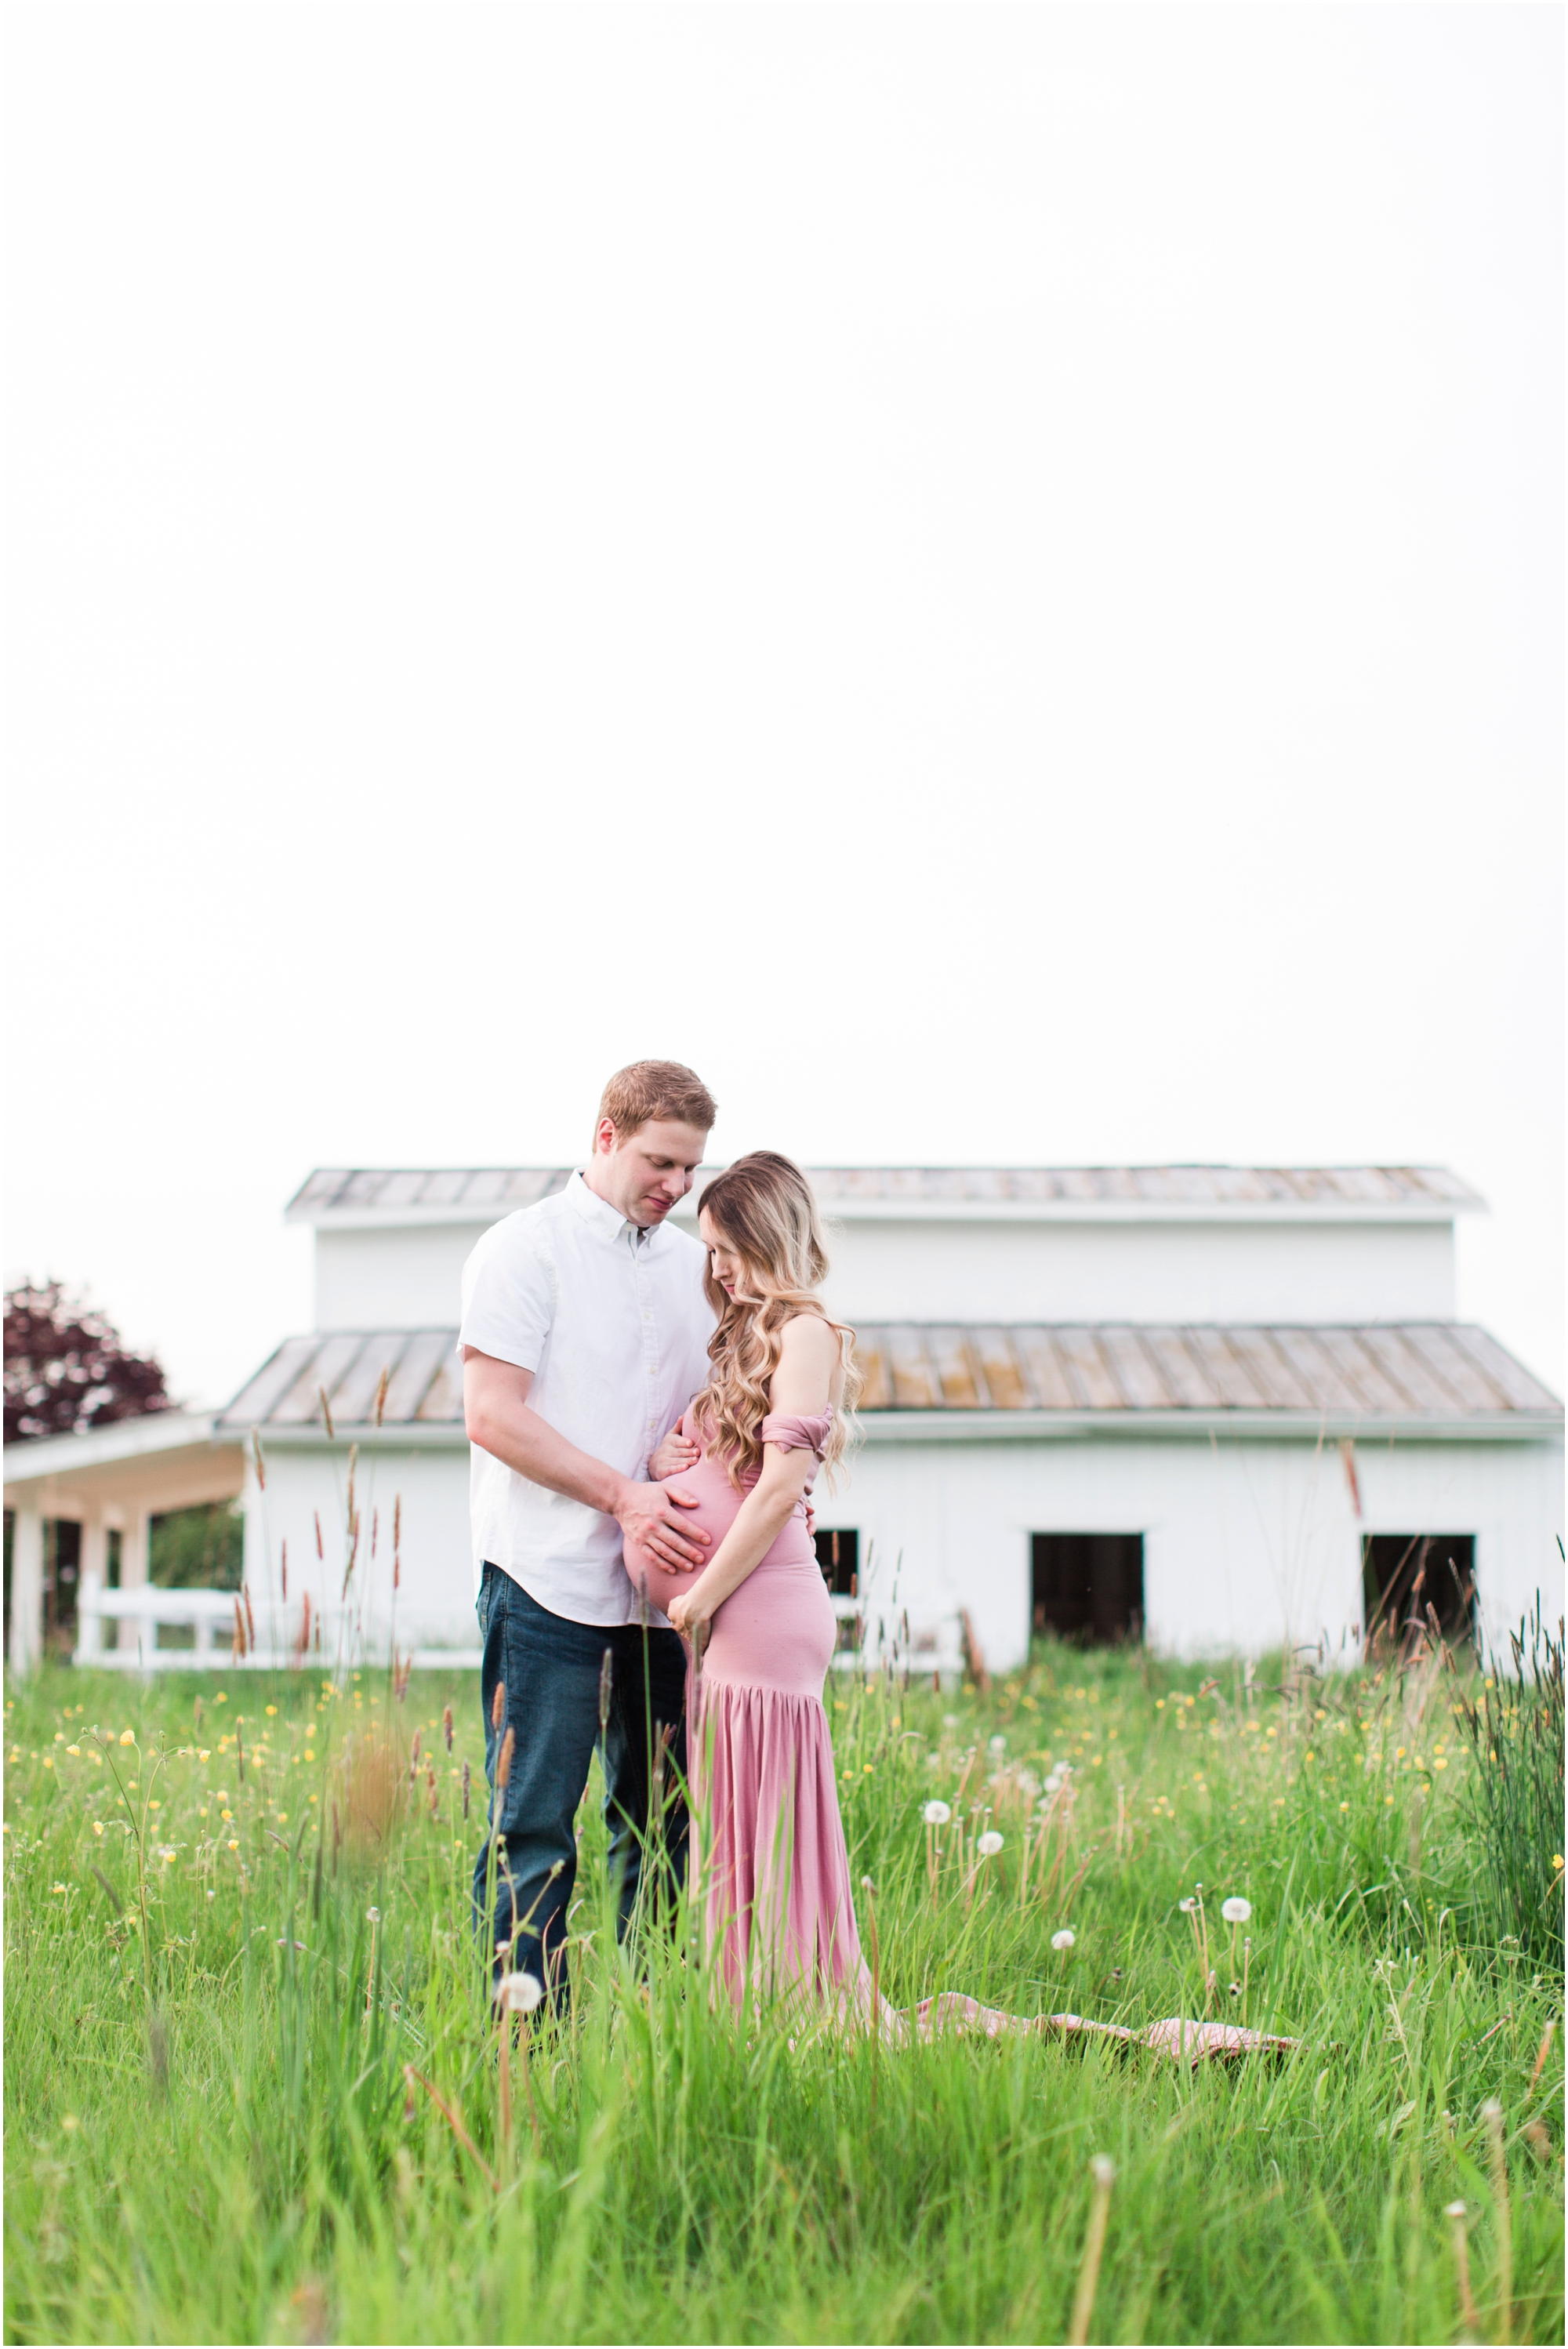 Wild Hearts Farm maternity shoot in Tacoma. Photos by Briana Calderon Photography based in the greater Seattle Tacoma Area._1218.jpg